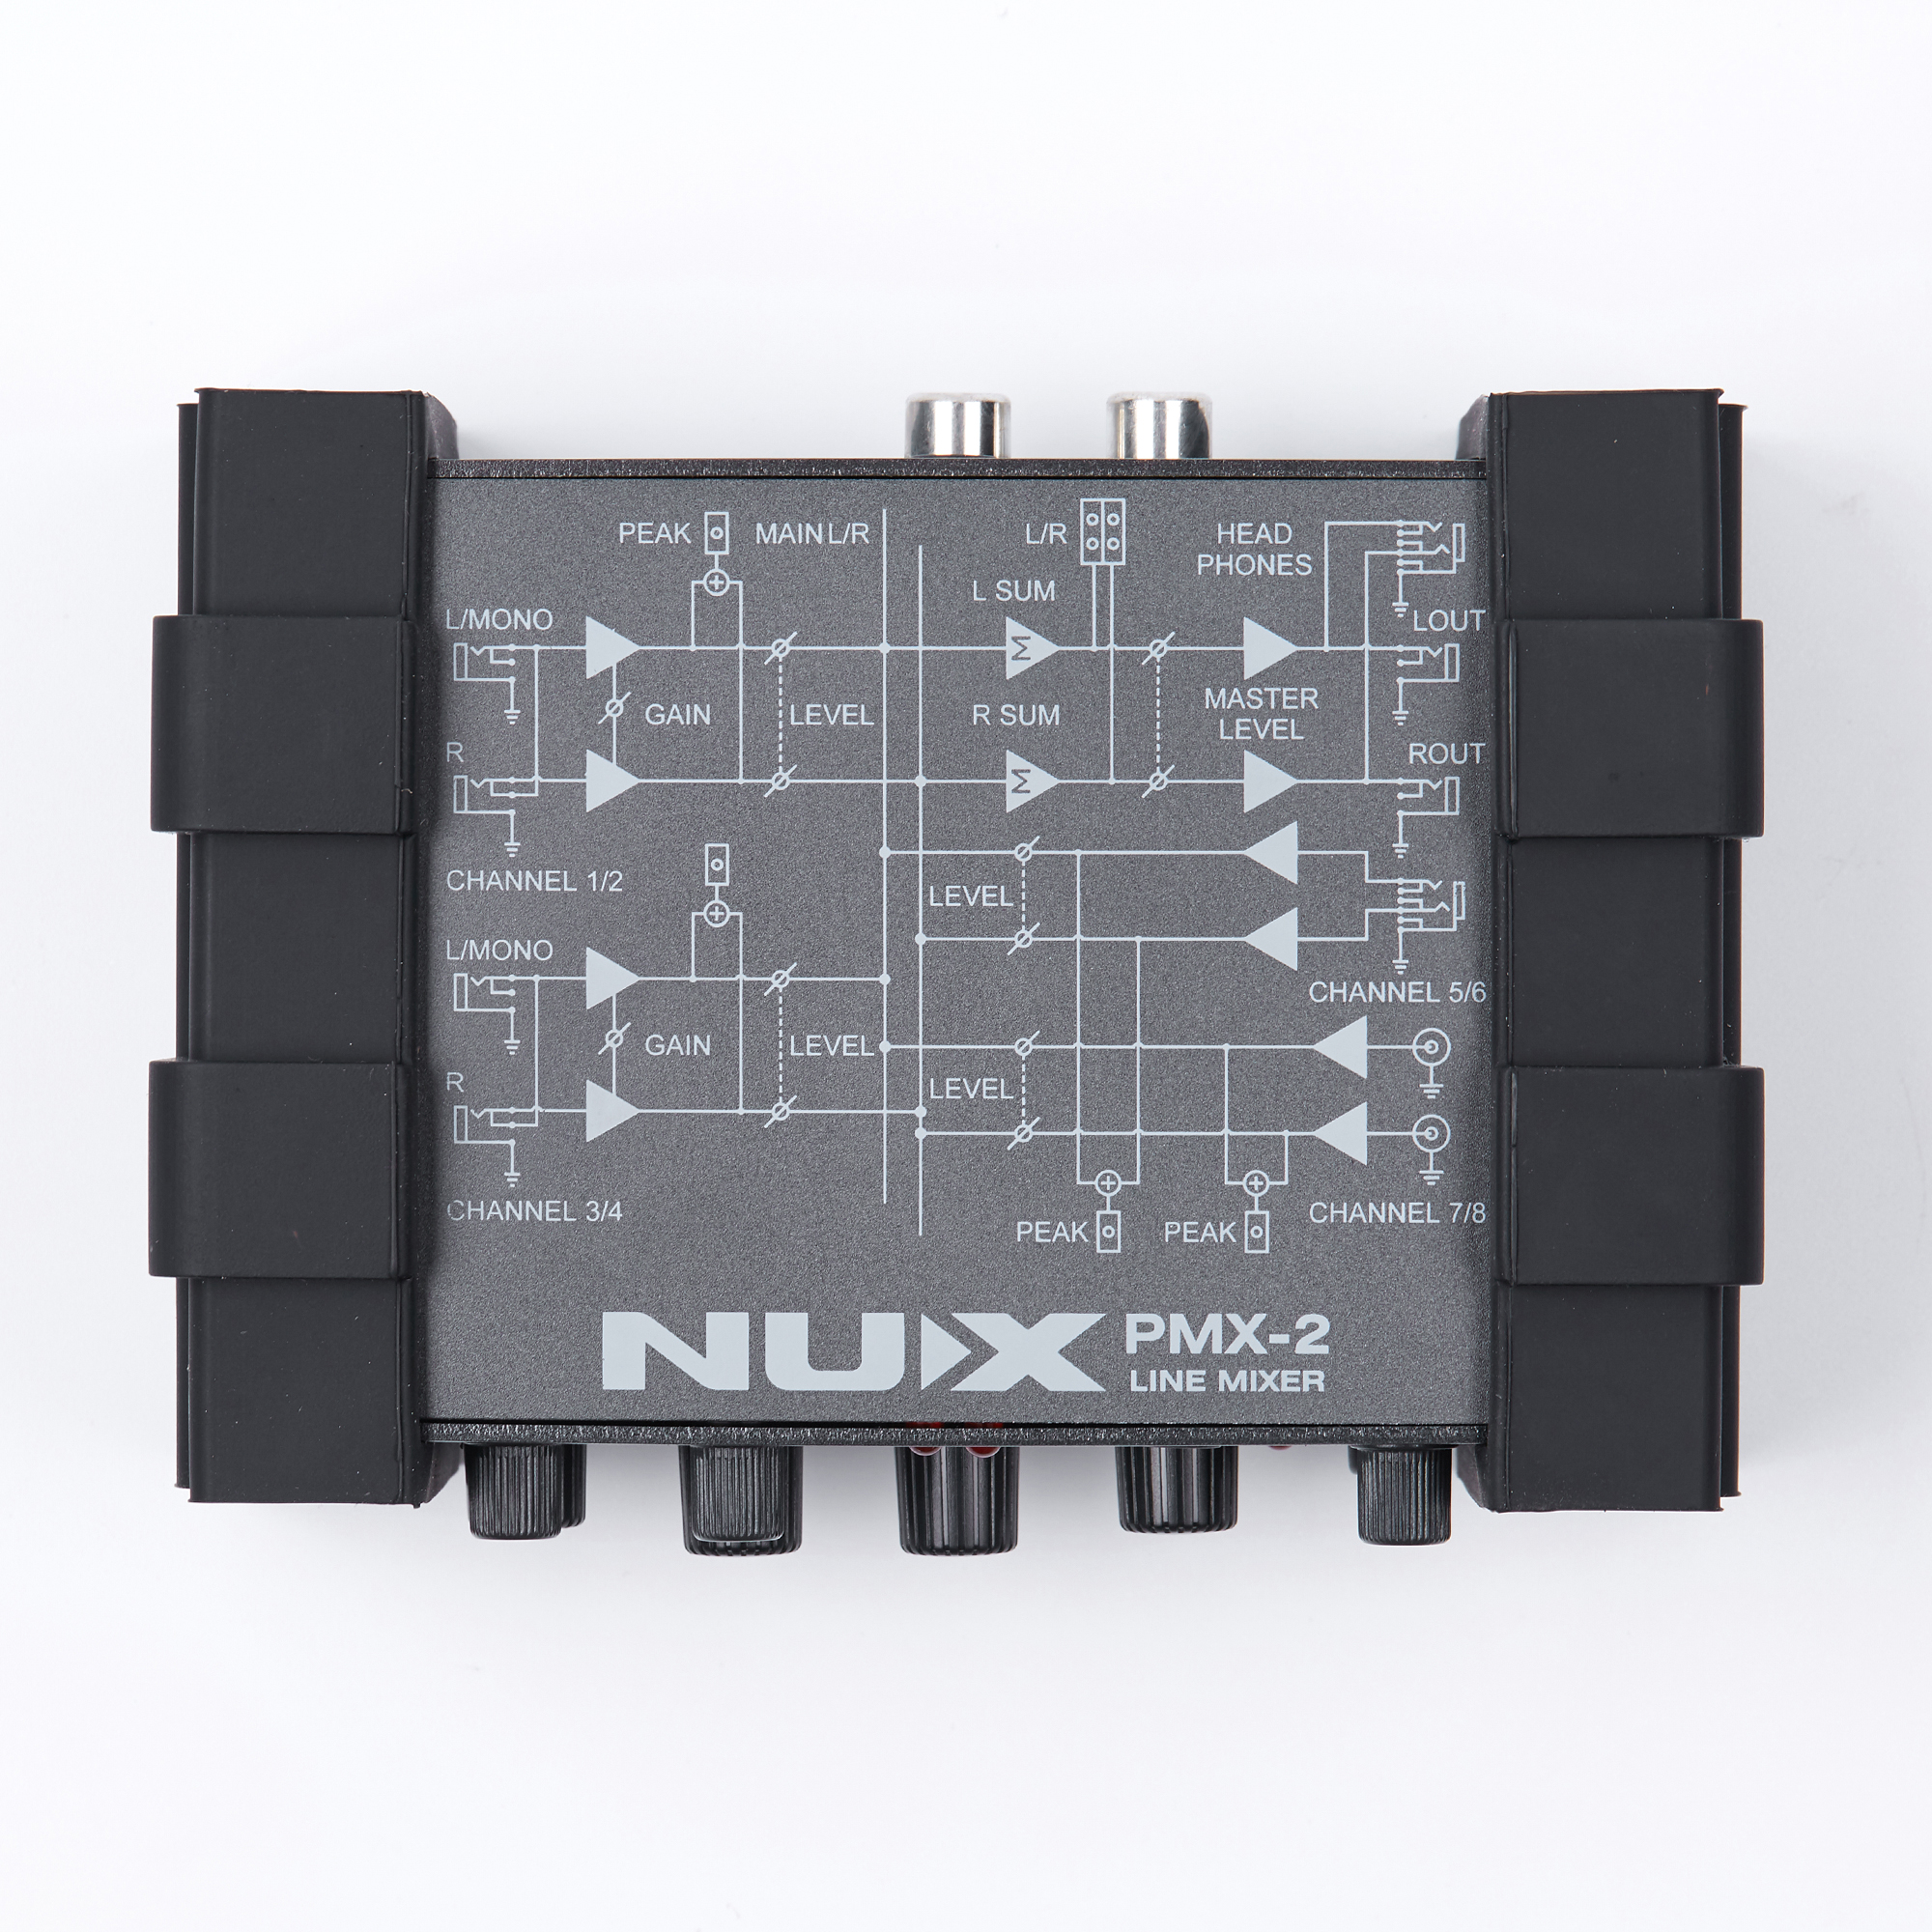 Gain Control 8 Inputs and 2 Outputs NUX PMX-2 Multi-Channel Mini Mixer 30 Musical Instruments Accessories for Guitar Bass Player d5036 2sd5036 to 3p